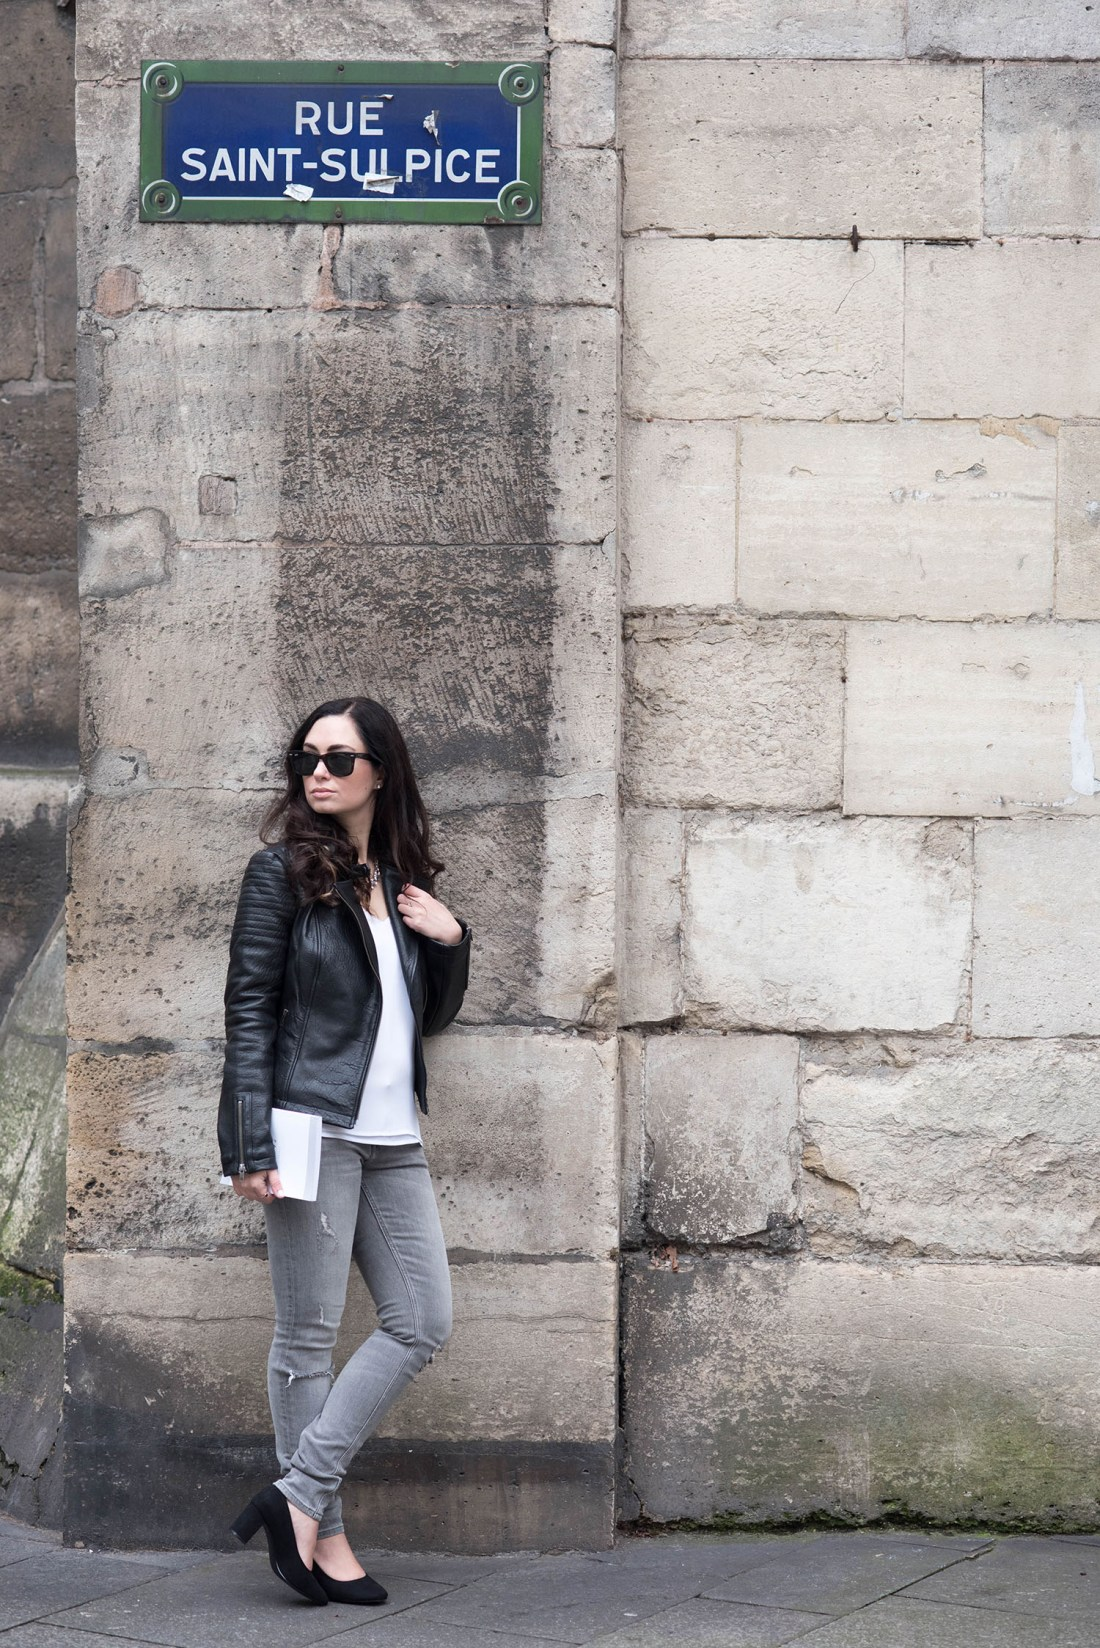 Personal style blogger Cee Fardoe of Coco & Vera stands on rue Saint-Sulpice wearing a Cupcakes & Cashmere jacket